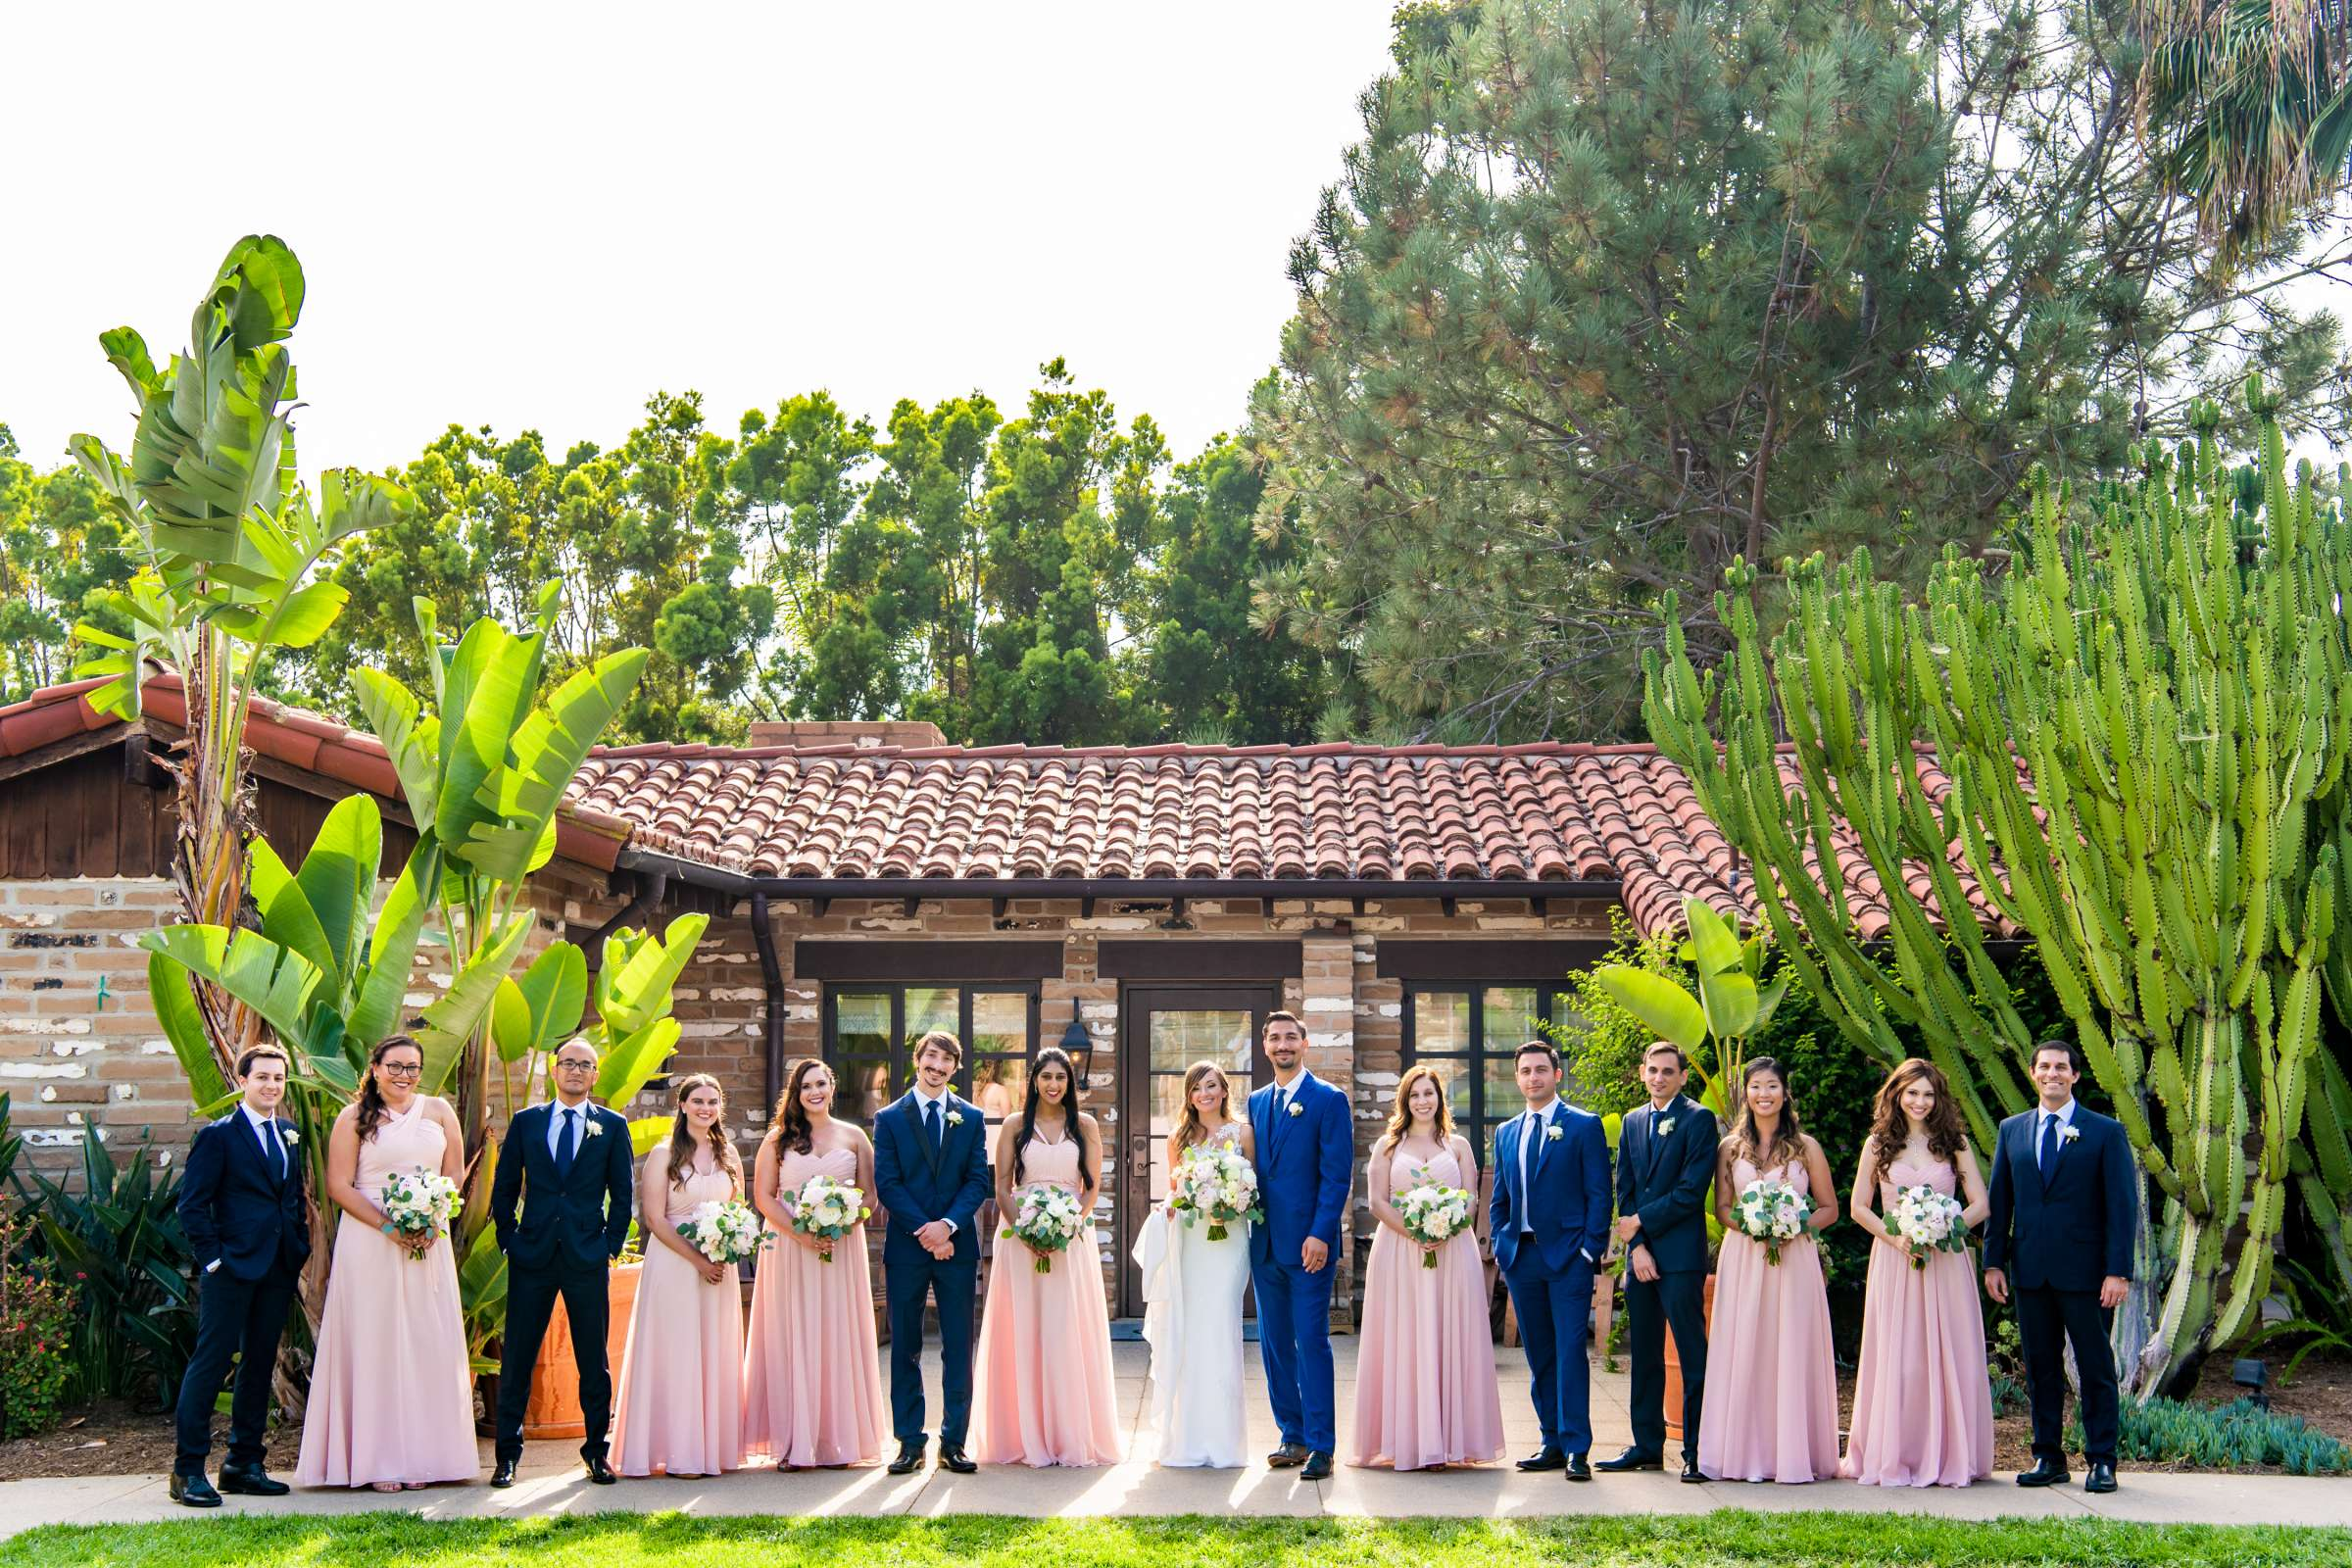 Estancia Wedding coordinated by Mireya & Co, Kelly and Vlad Wedding Photo #90 by True Photography